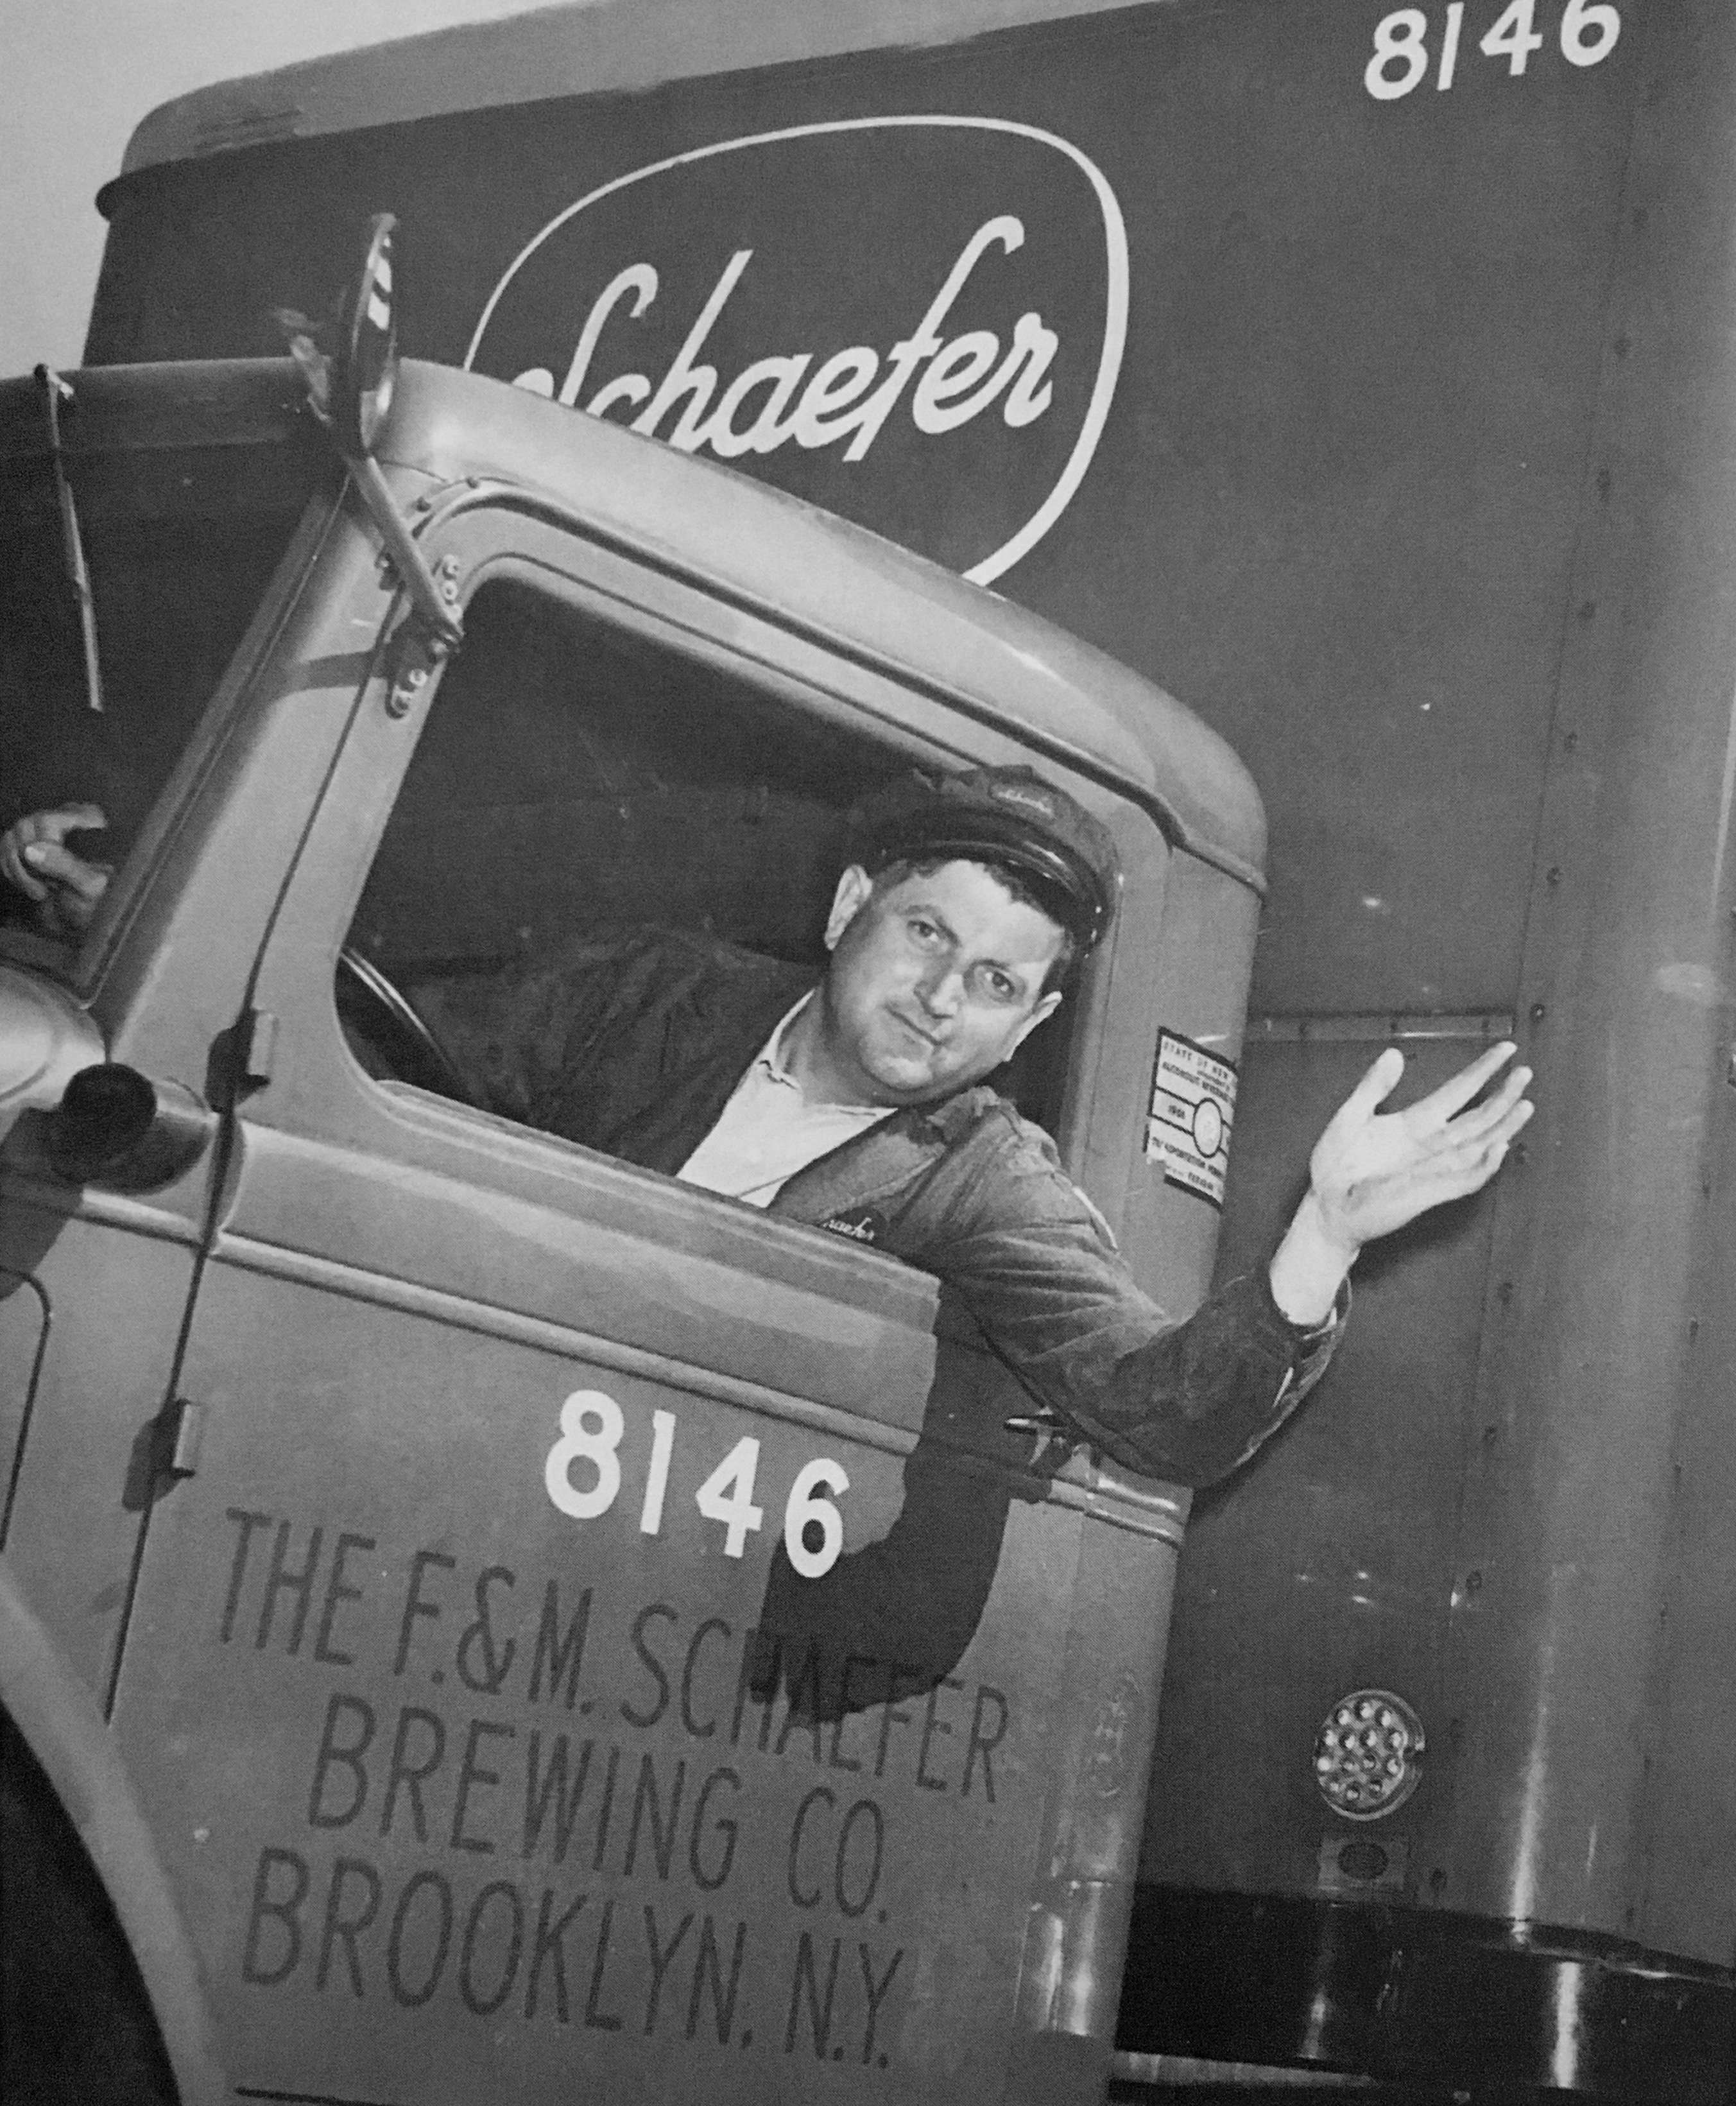 Schaefer driver, after the strike